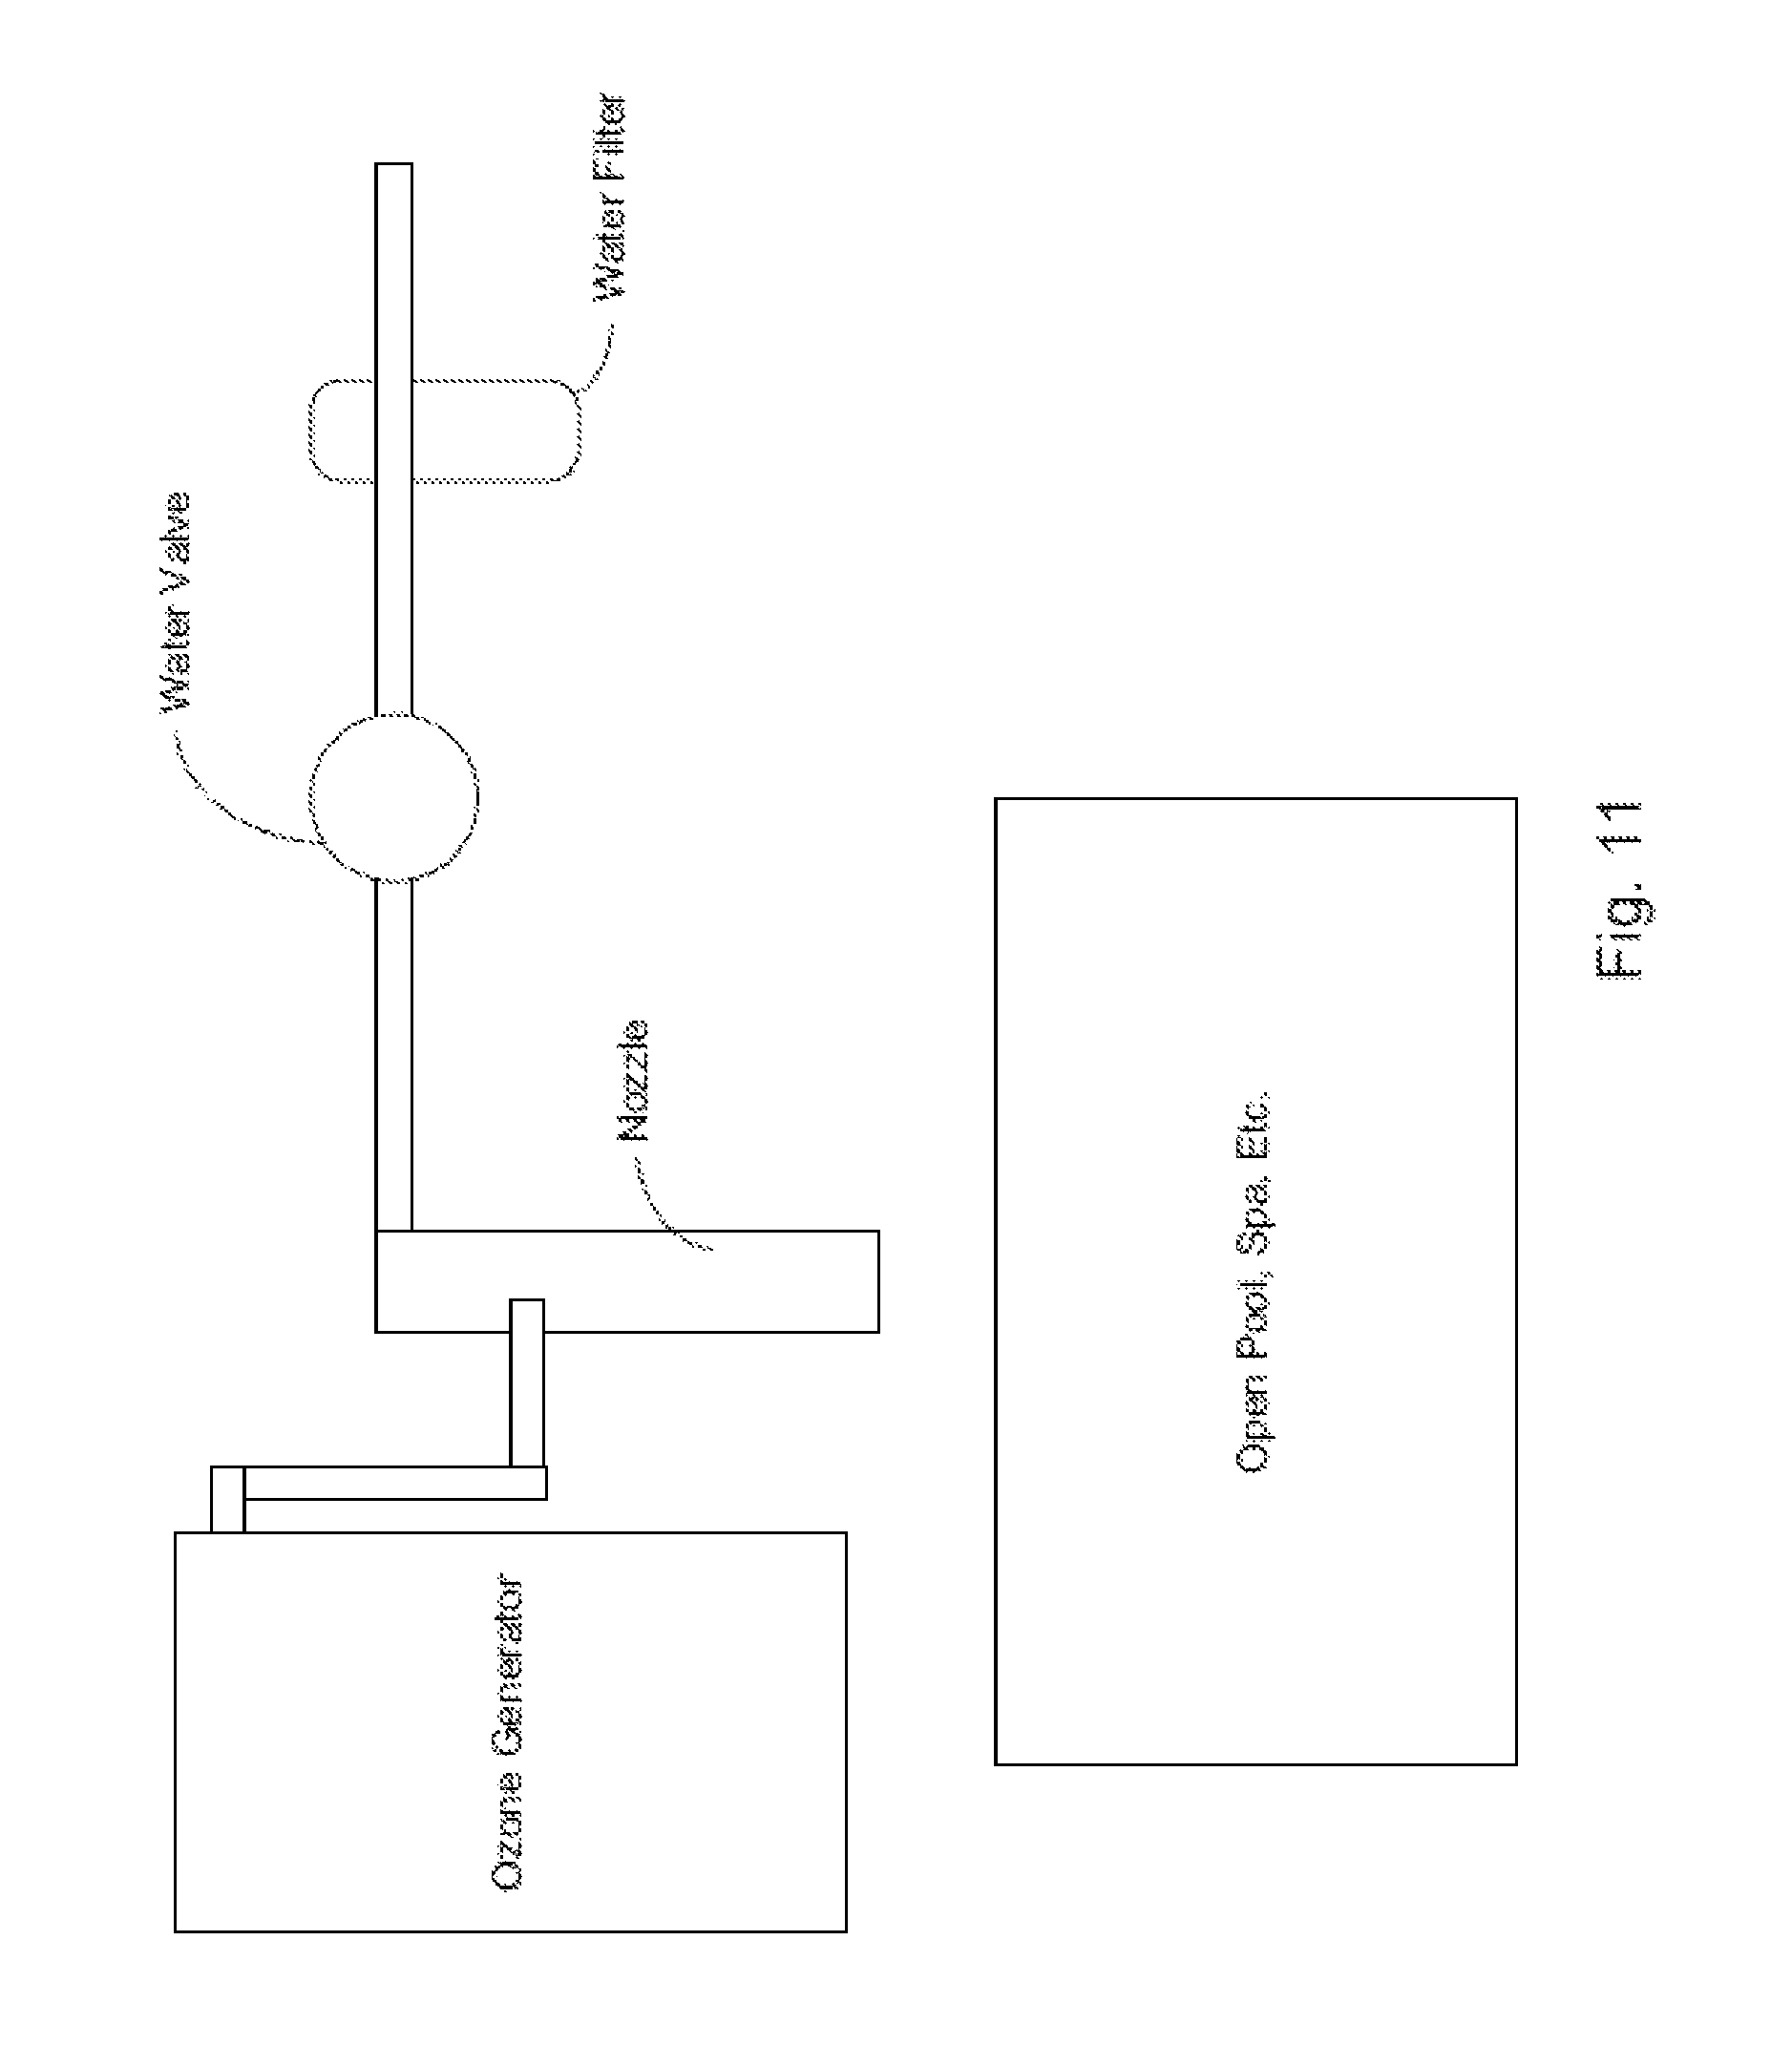 Patent Us8696796 Systems And Methods For Reducing Off Gassed Ozone Generator Circuit Water Pool Drawing